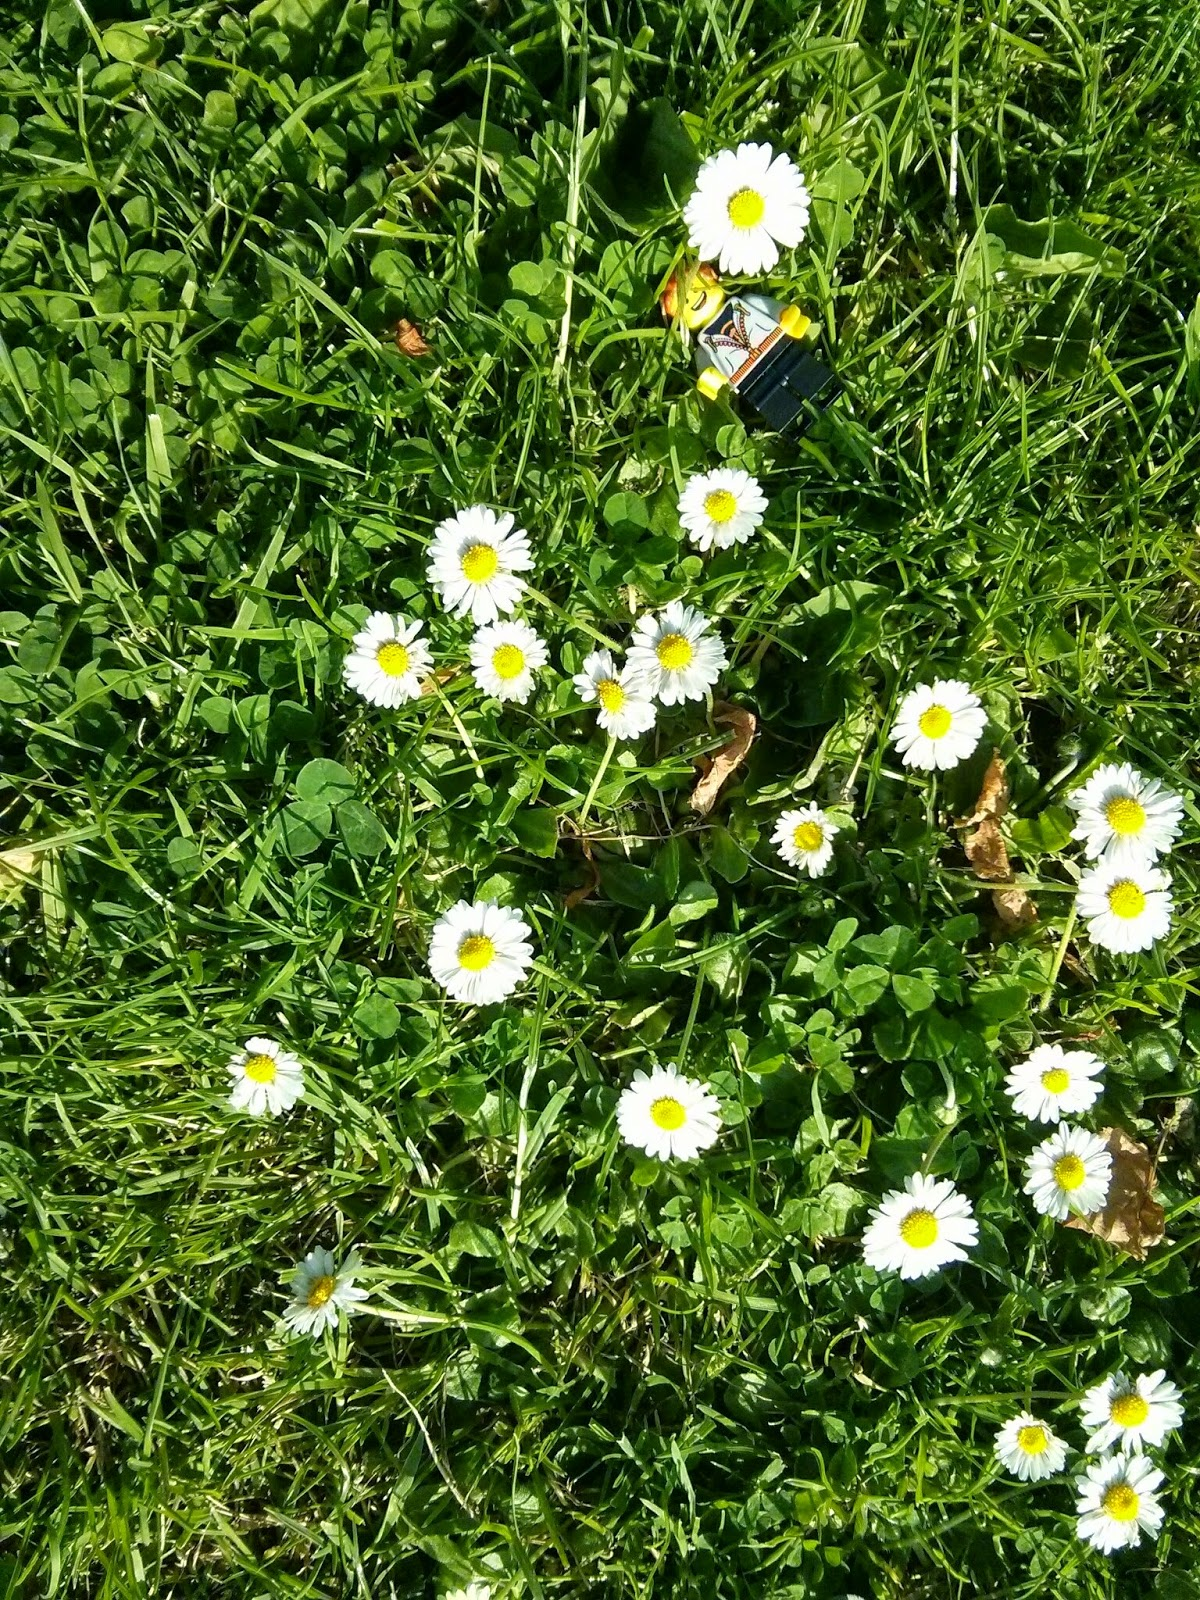 Kyle Emmett laying down in a field of Daisies